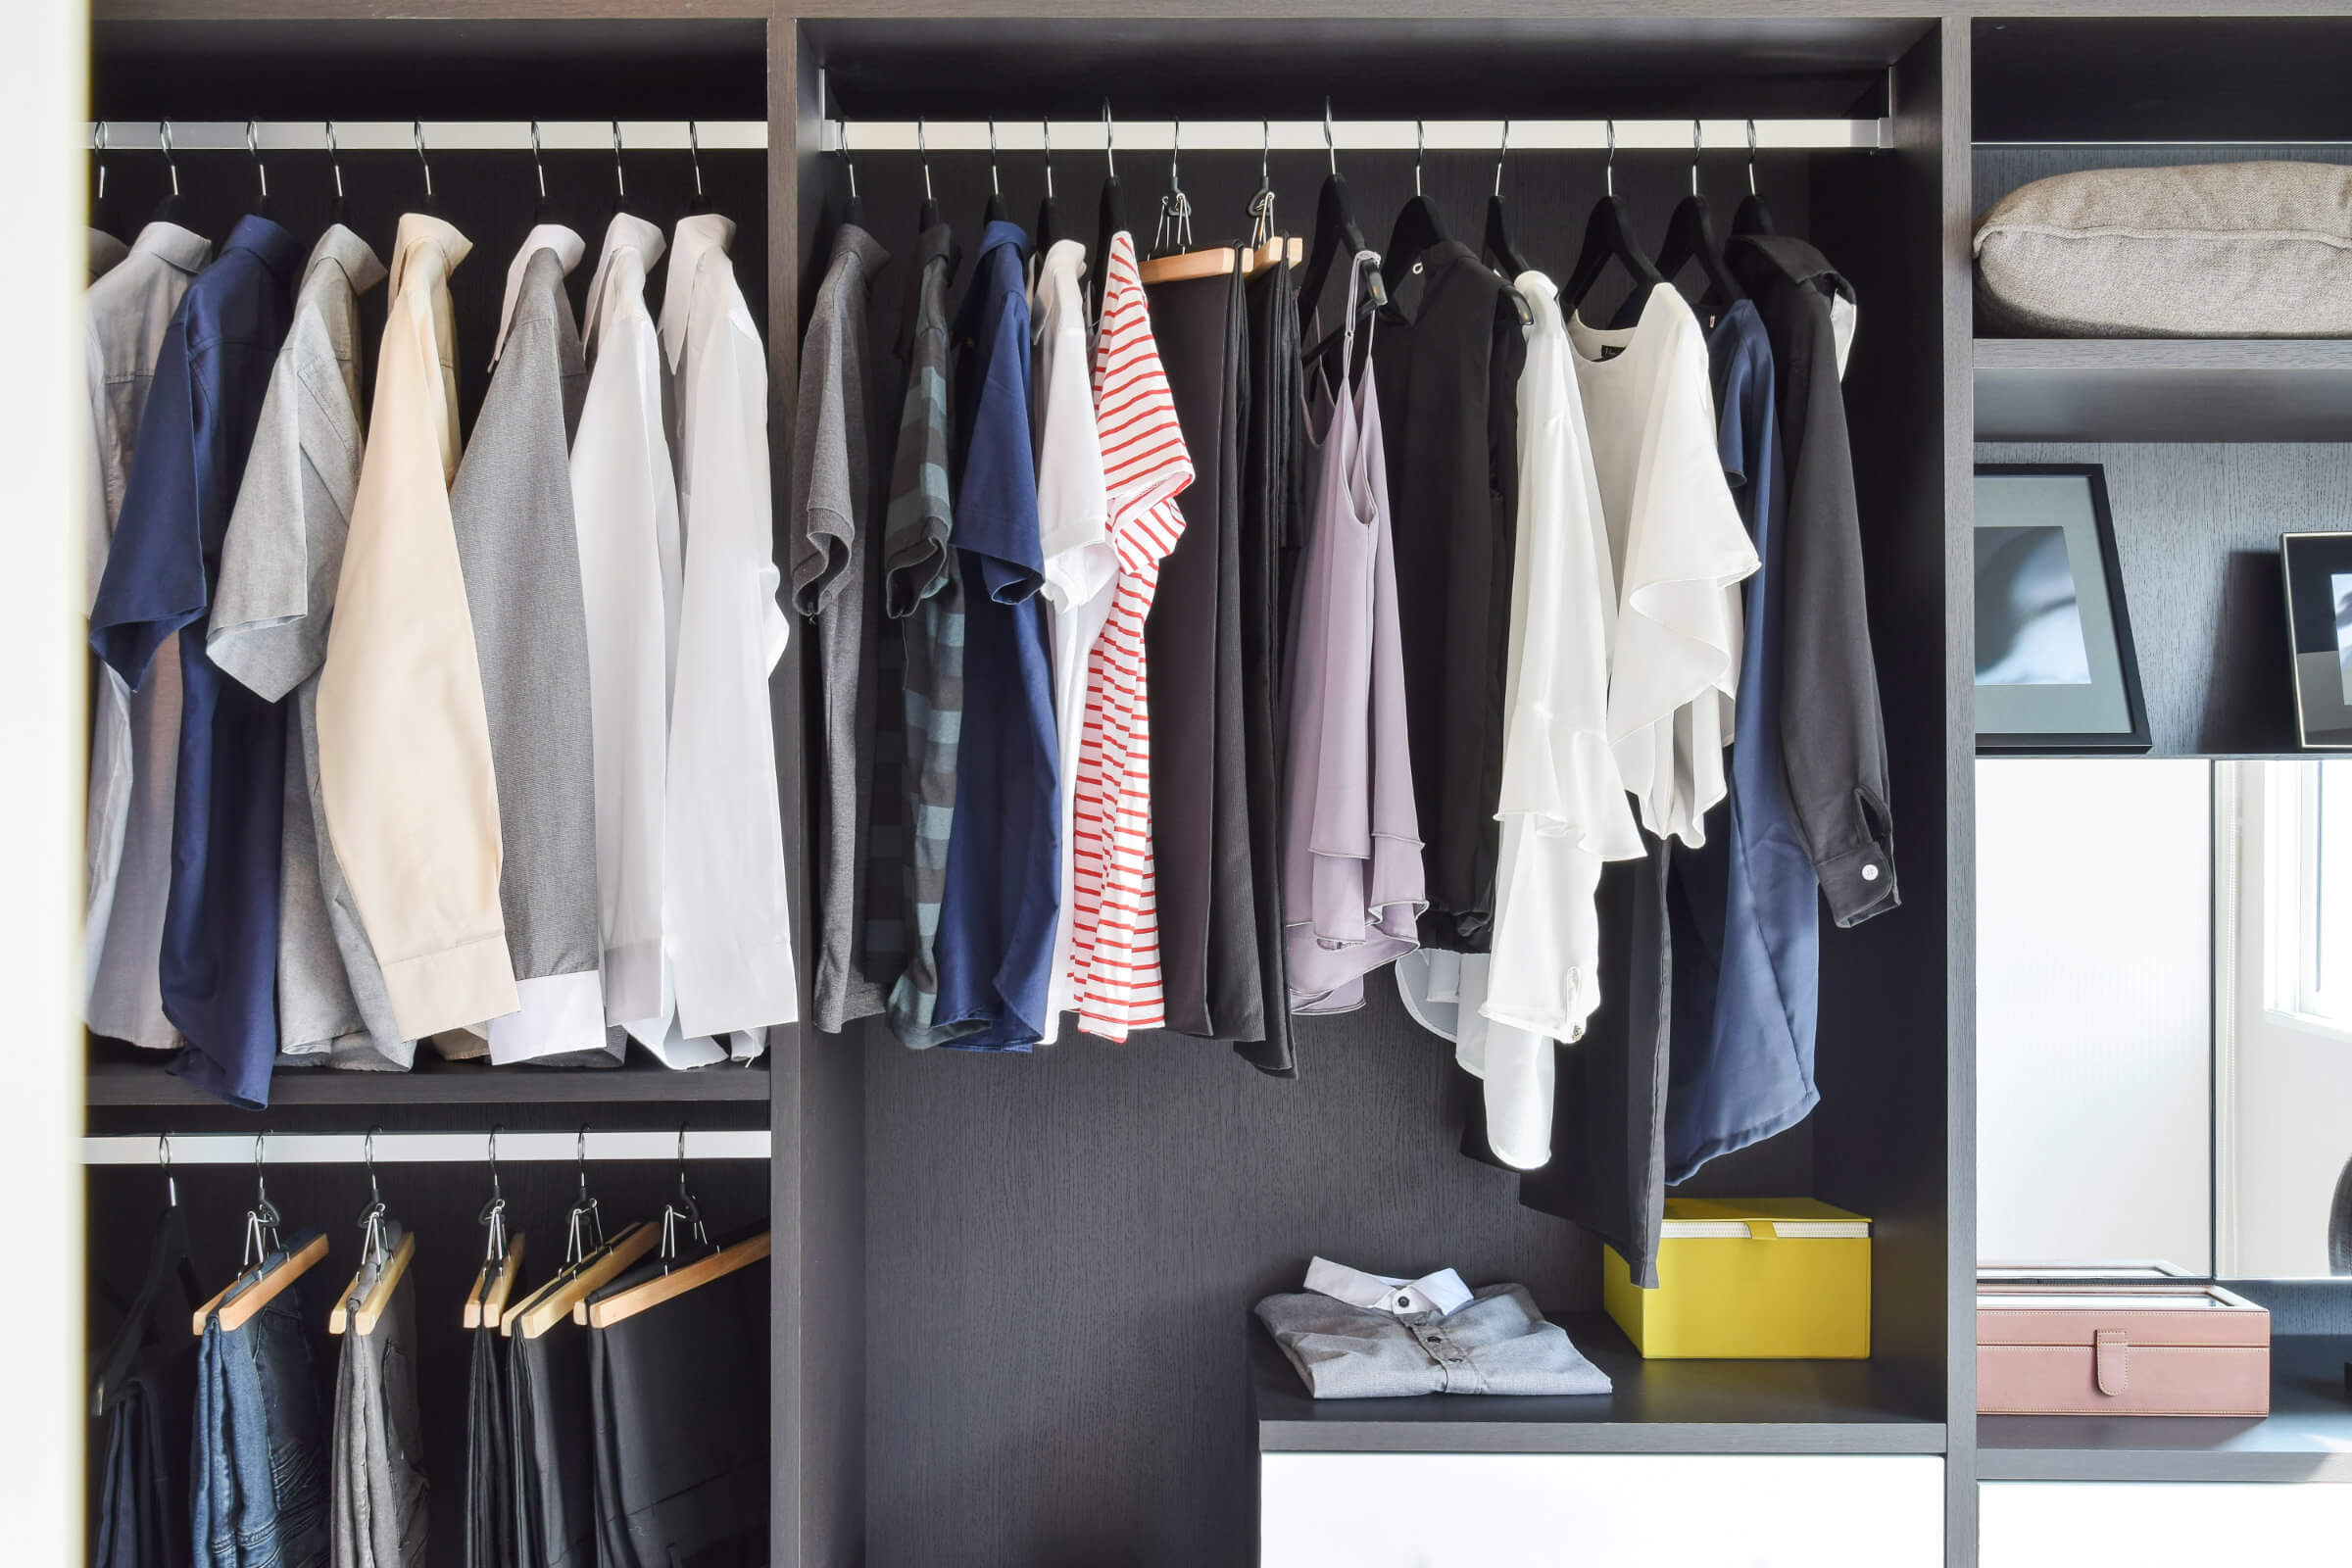 A Tidy Wardrobe Solution - Men's And Women's Clothes Hanging By Colour With A Couple Pieces Neatly Folded Underneath